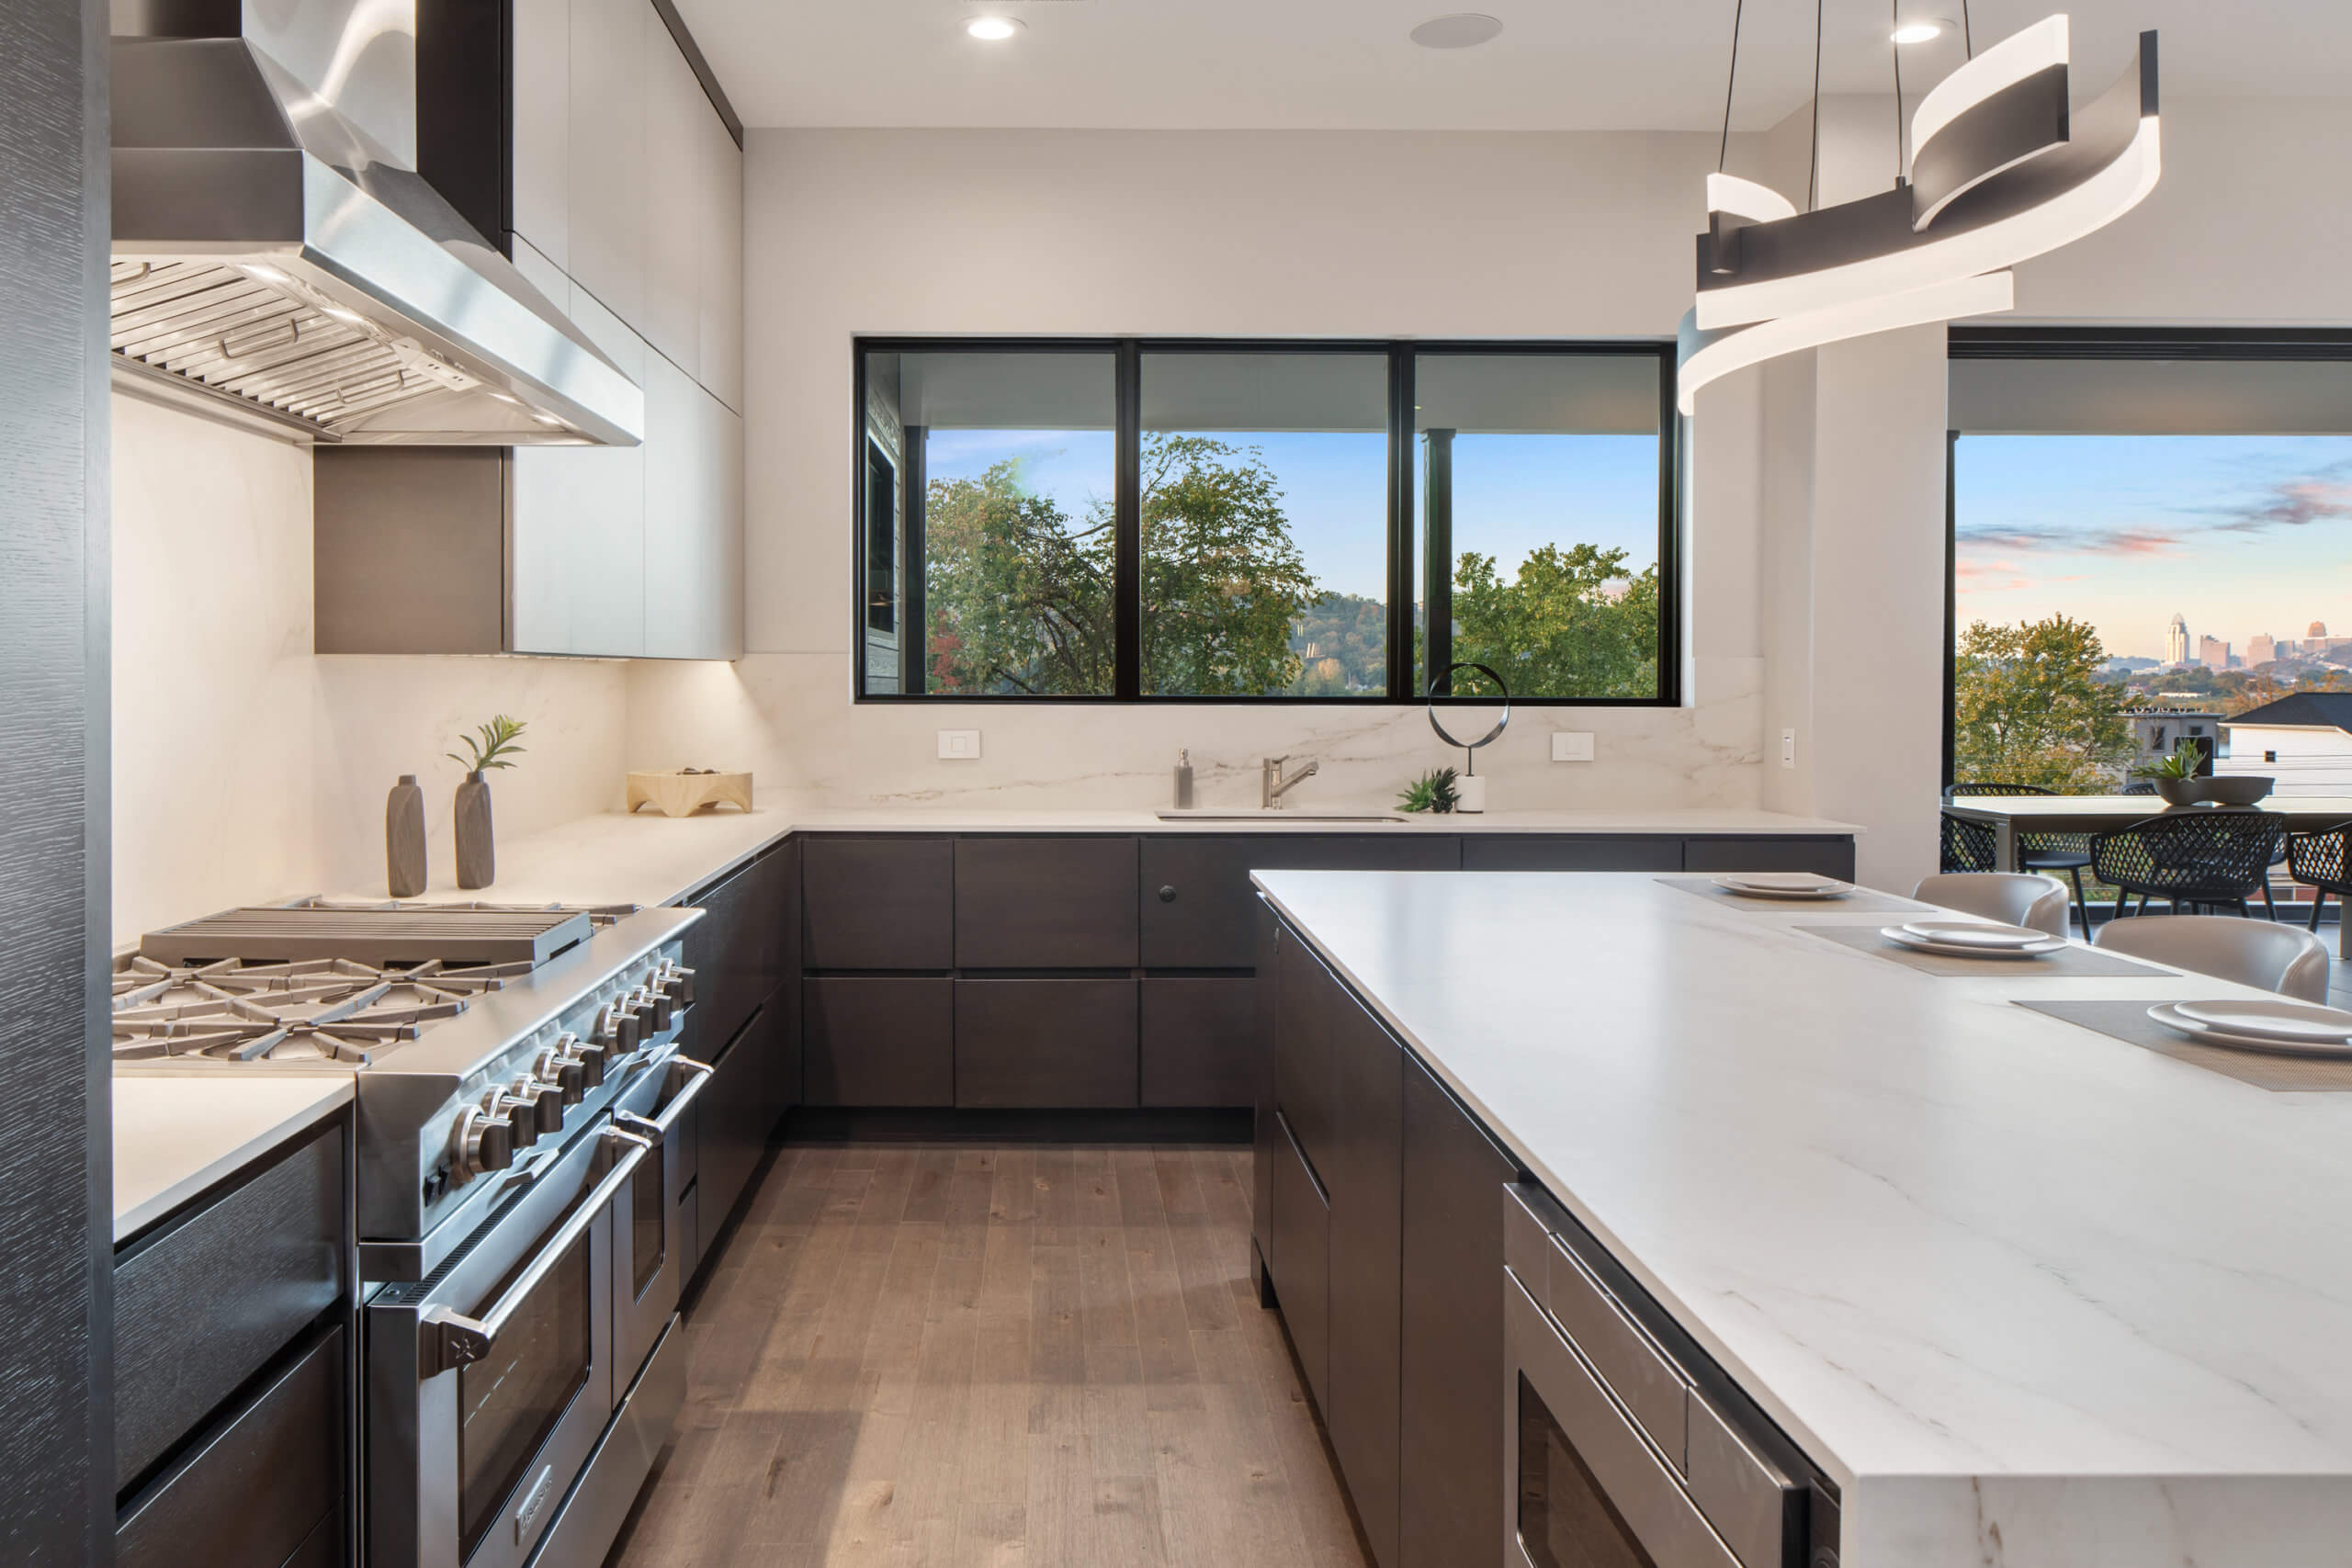 Custom contemporary kitchen's with view of the Ohio River. Kitchen and cabinetry designed by interior designer, RM Interiors.